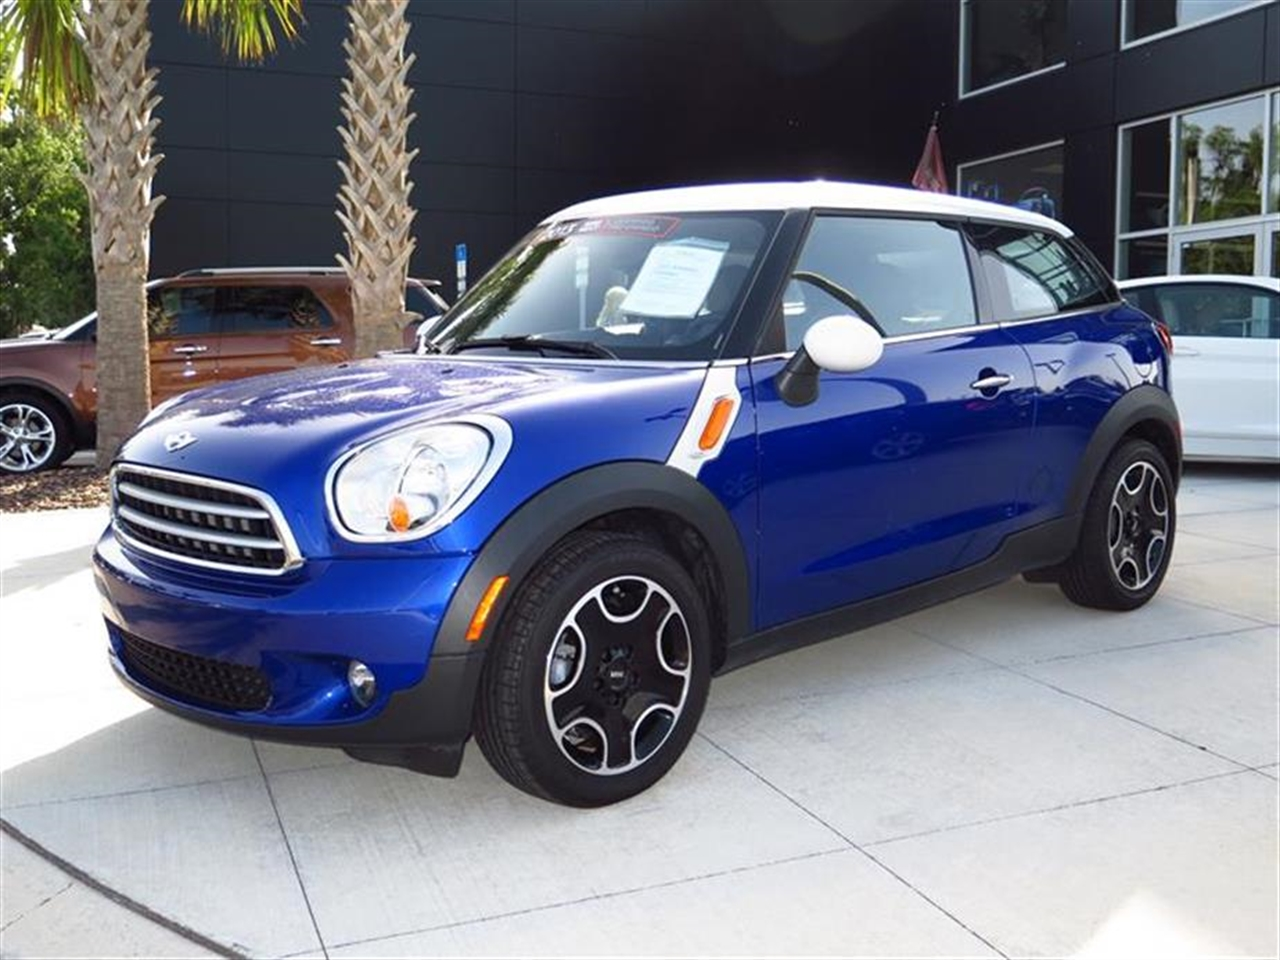 2013 MINI COOPER PACEMAN FWD 2dr 6971 miles 2 front cup holders 3 12V pwr outlets 2-piece ce